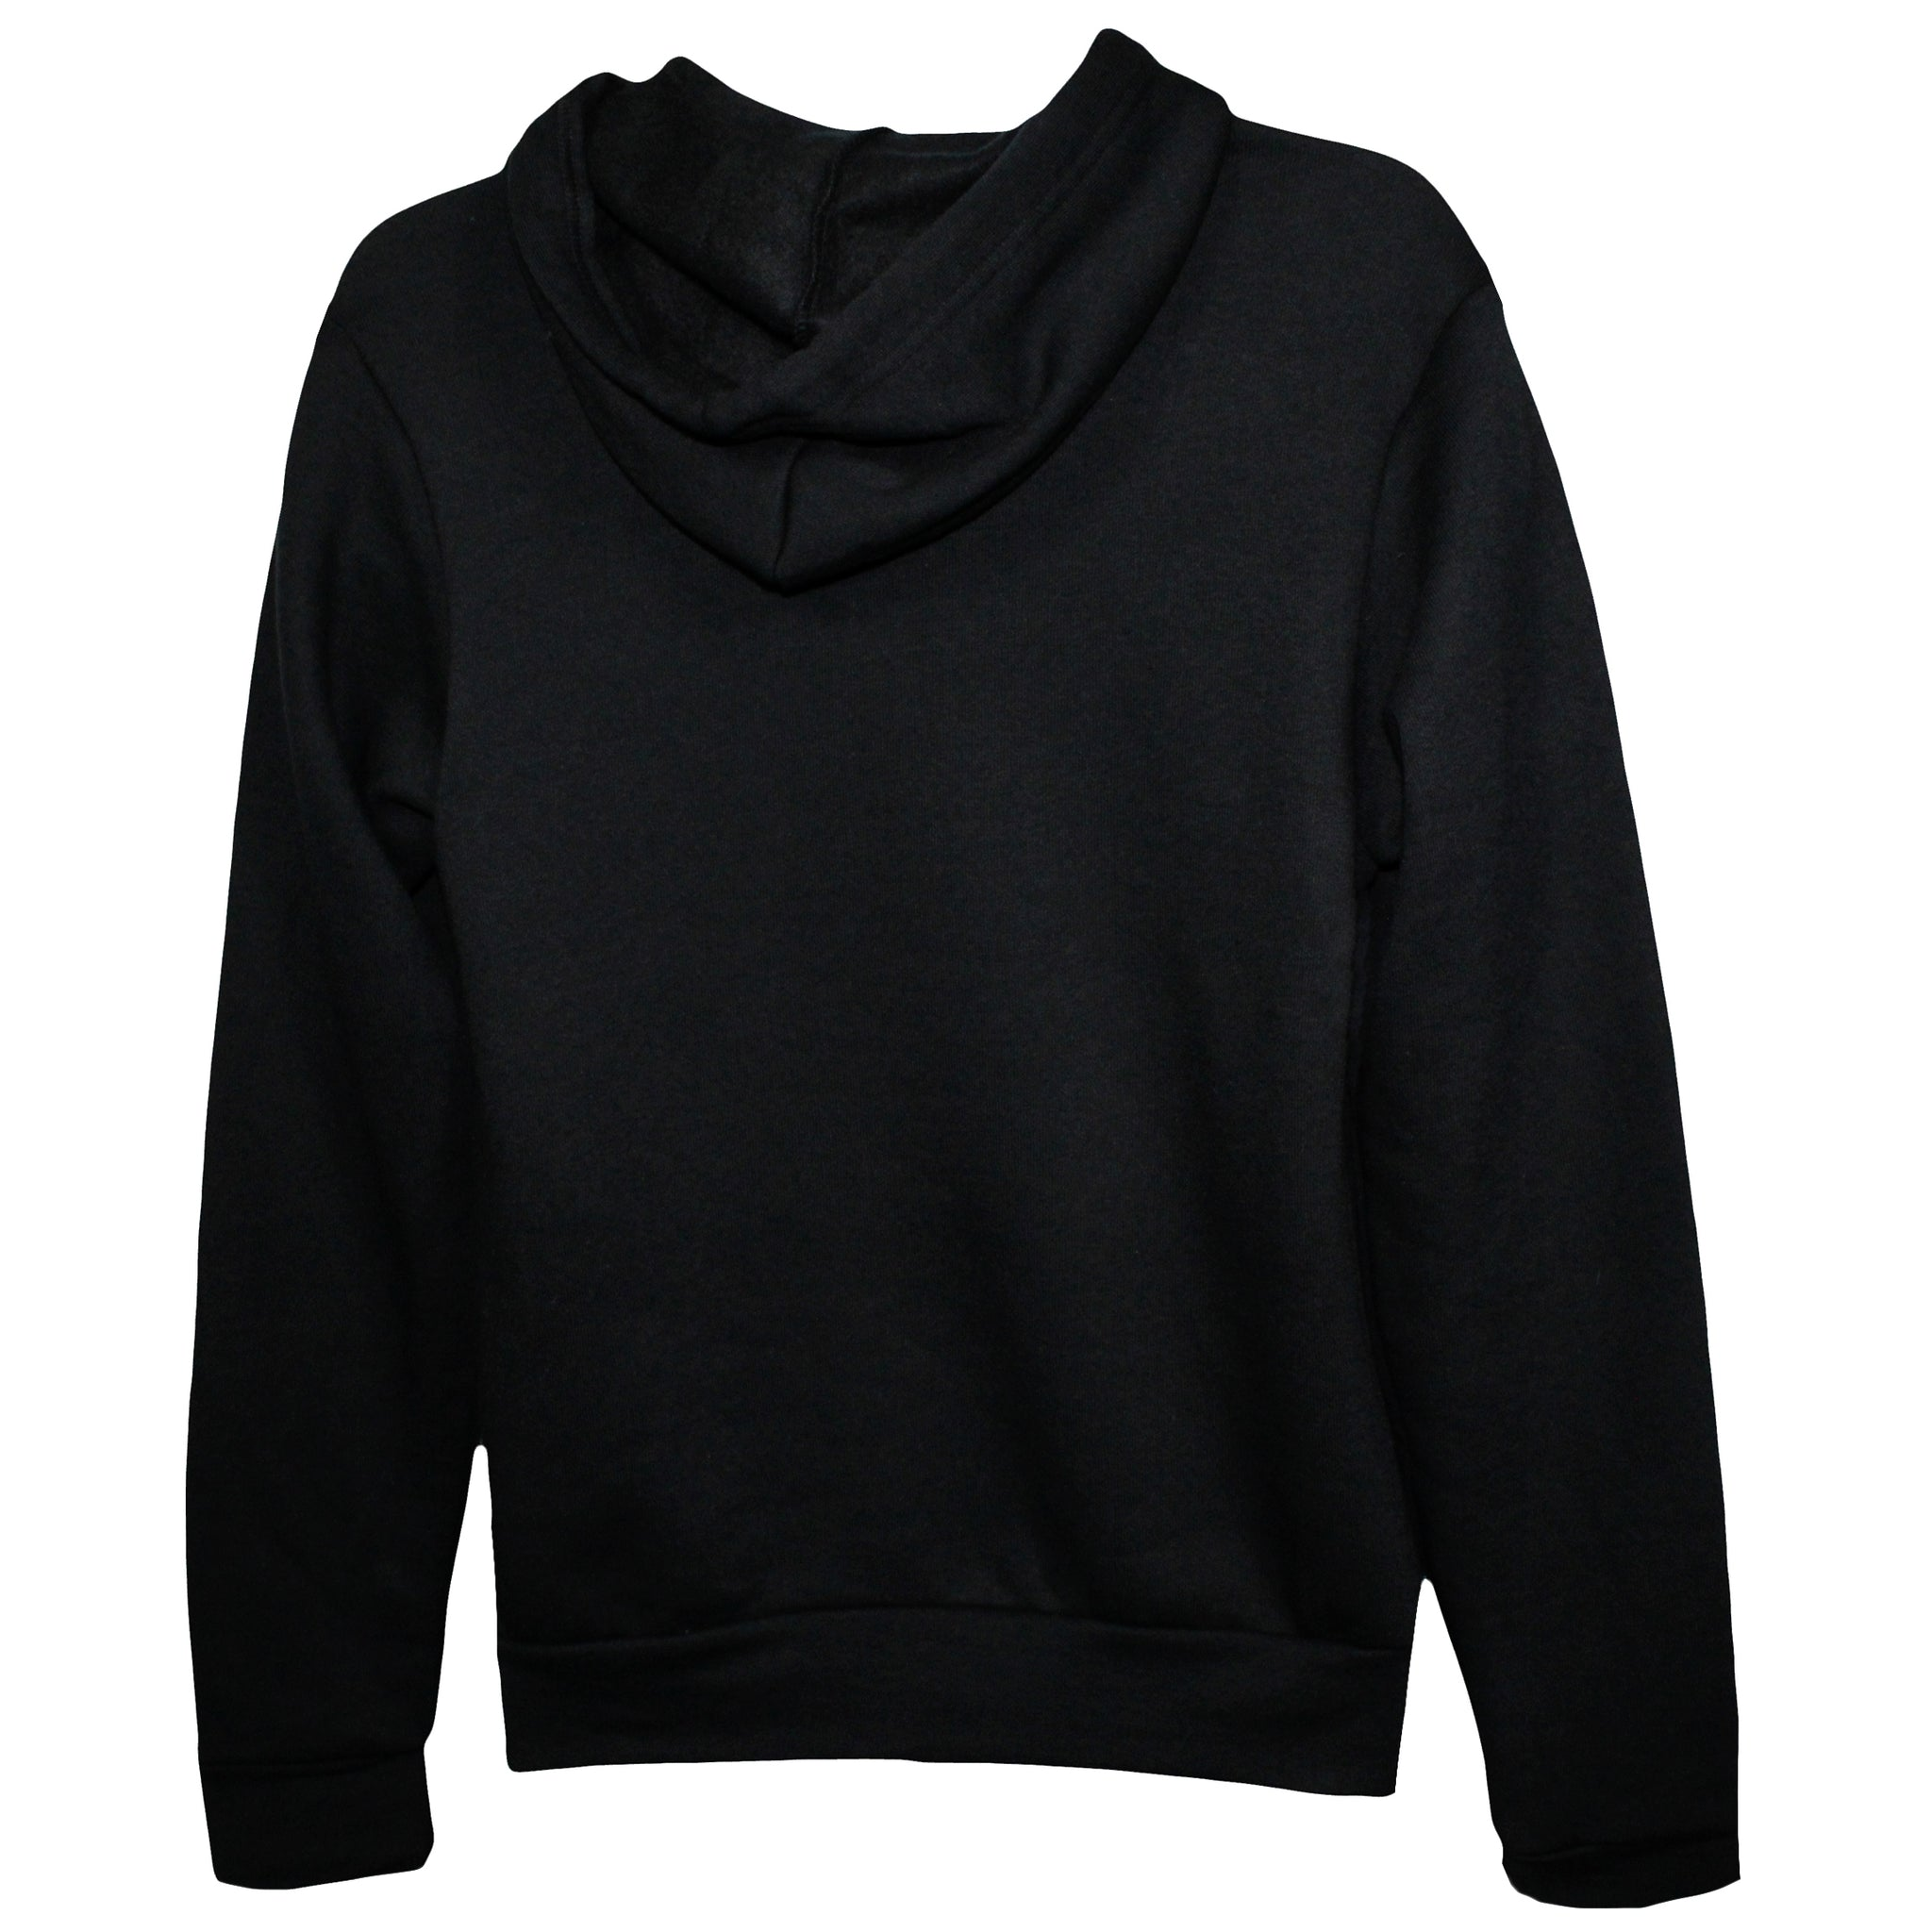 United by Flight Pullover Sweatshirt